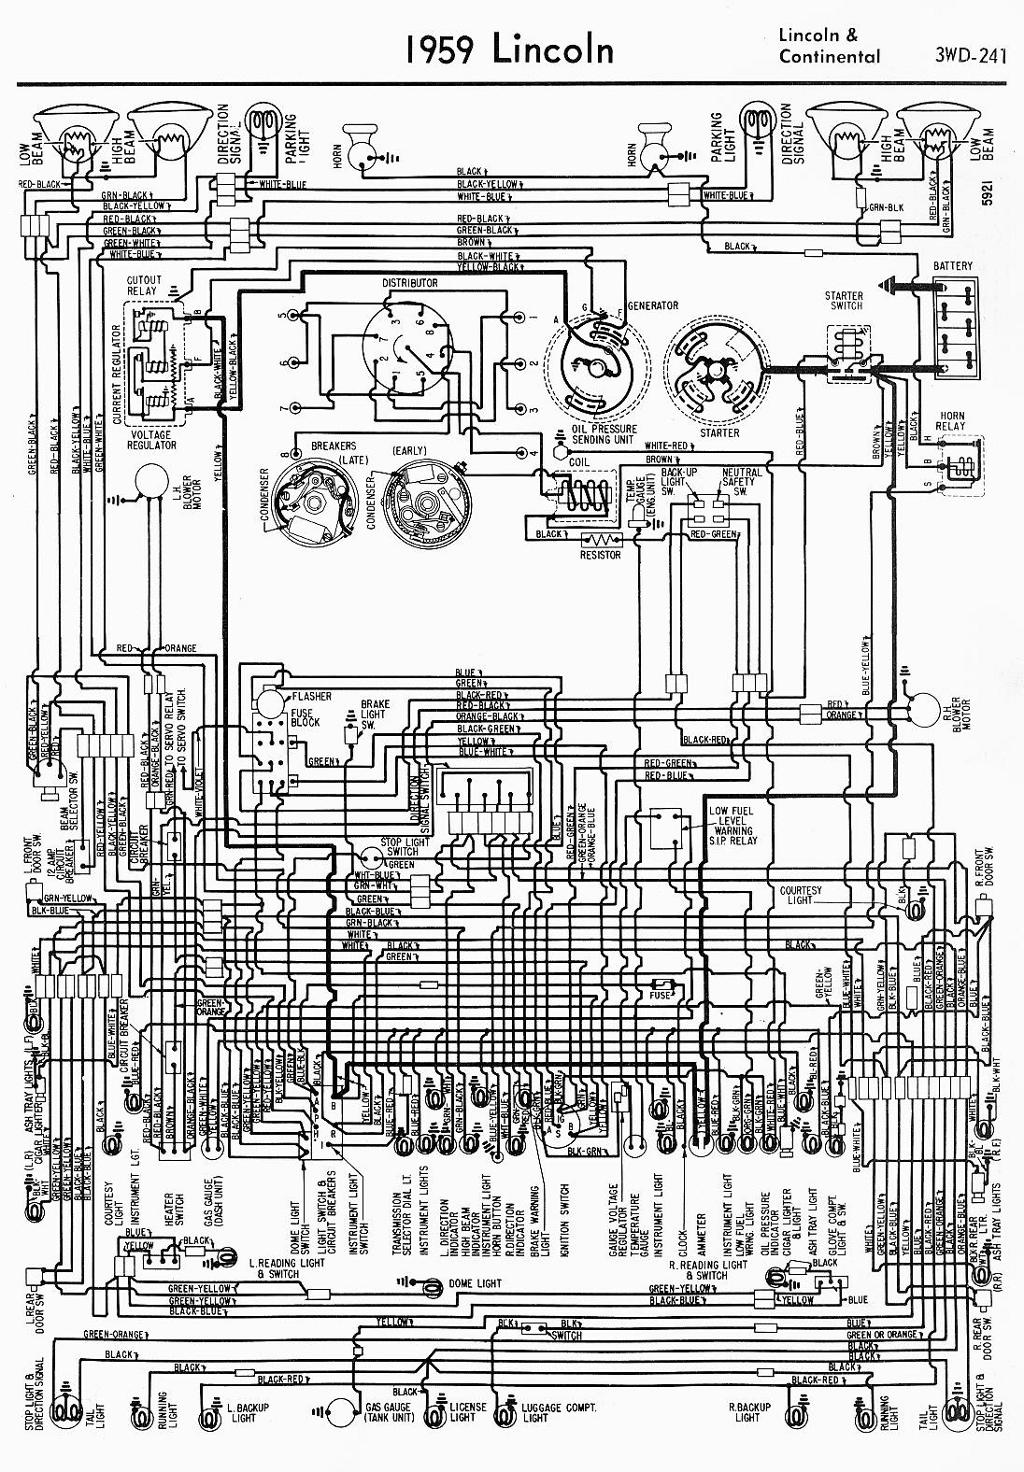 Lincoln Continental Wiring Diagram Trusted 1964 1947 Anything Diagrams U2022 Motor Company